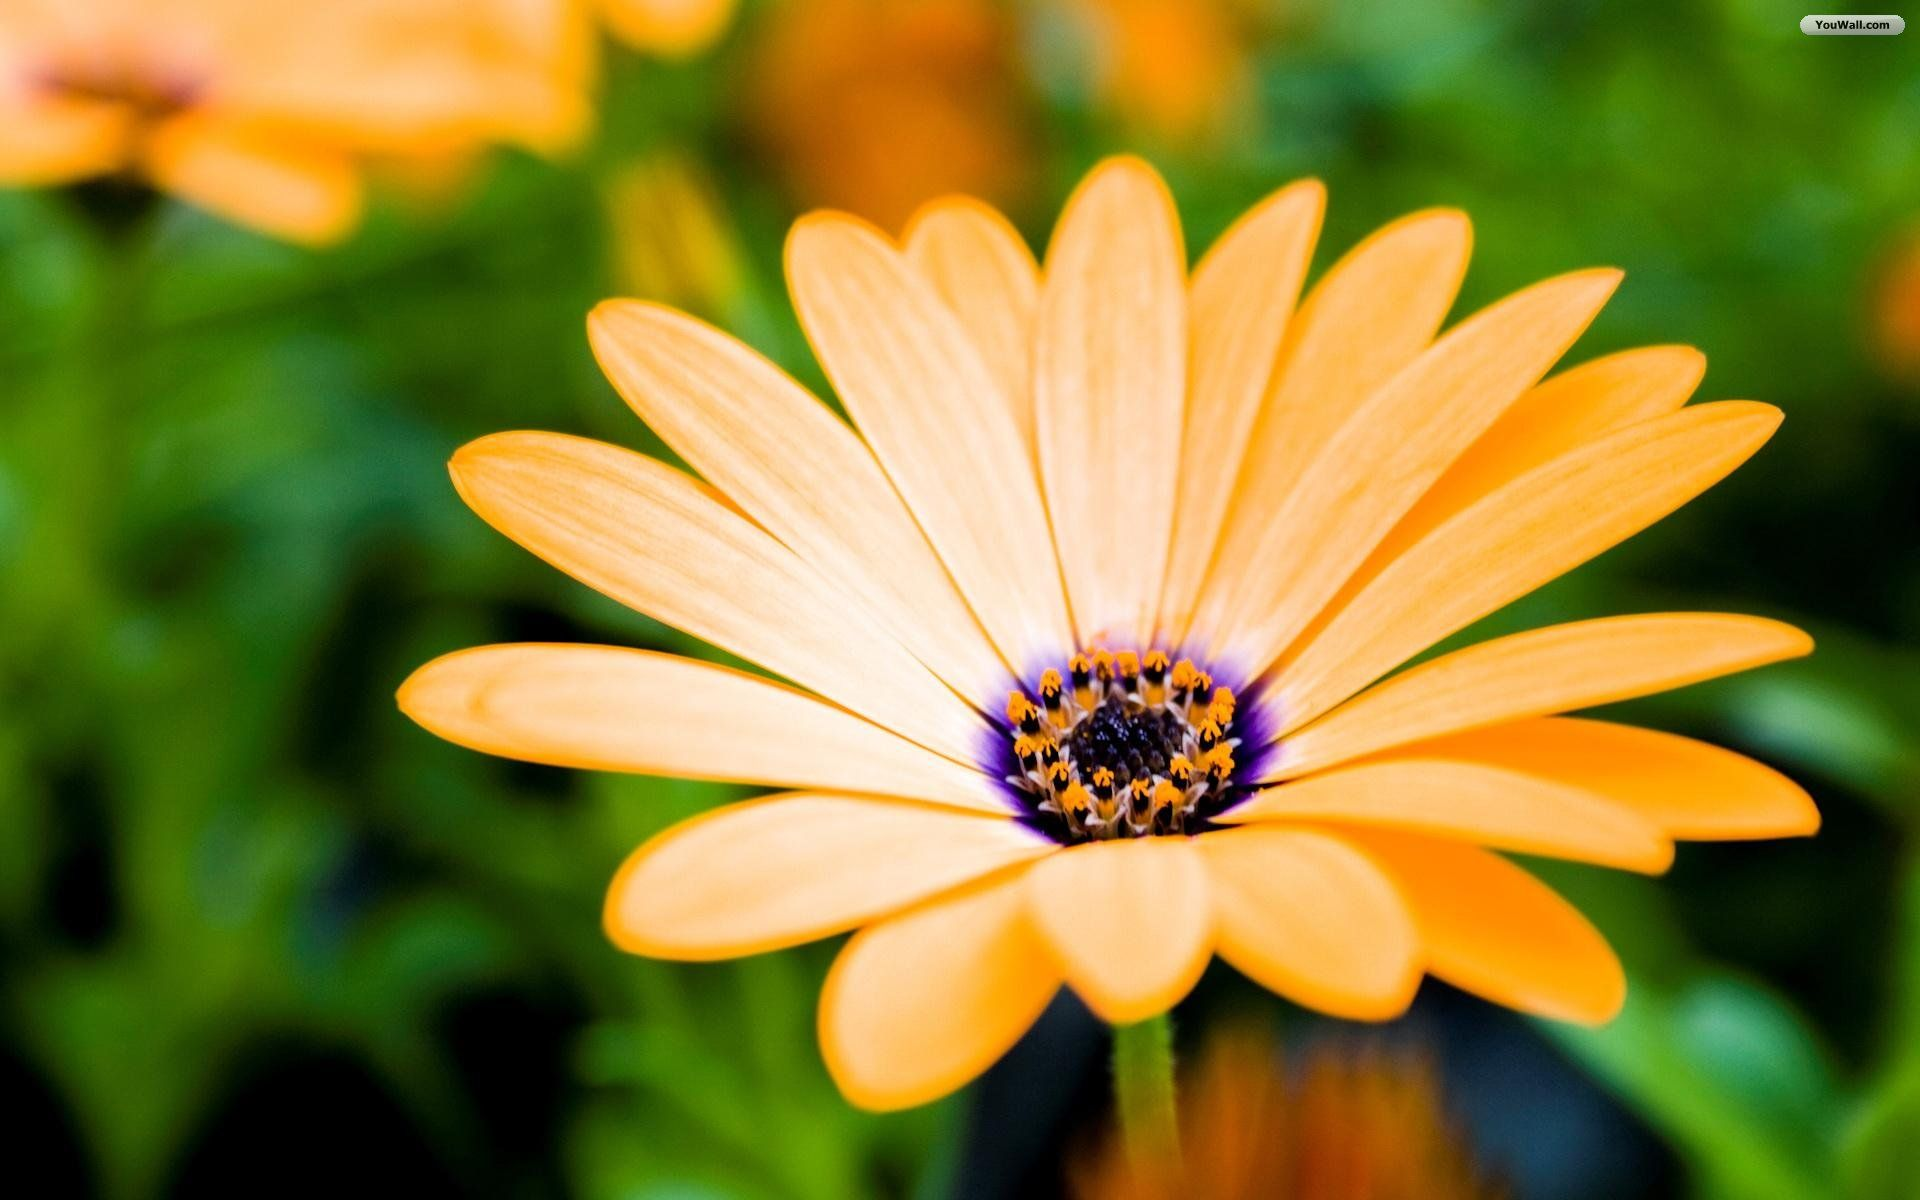 Download This Awesome Wallpaper Spring Flowers Wallpaper Flower Desktop Wallpaper Flower Wallpaper